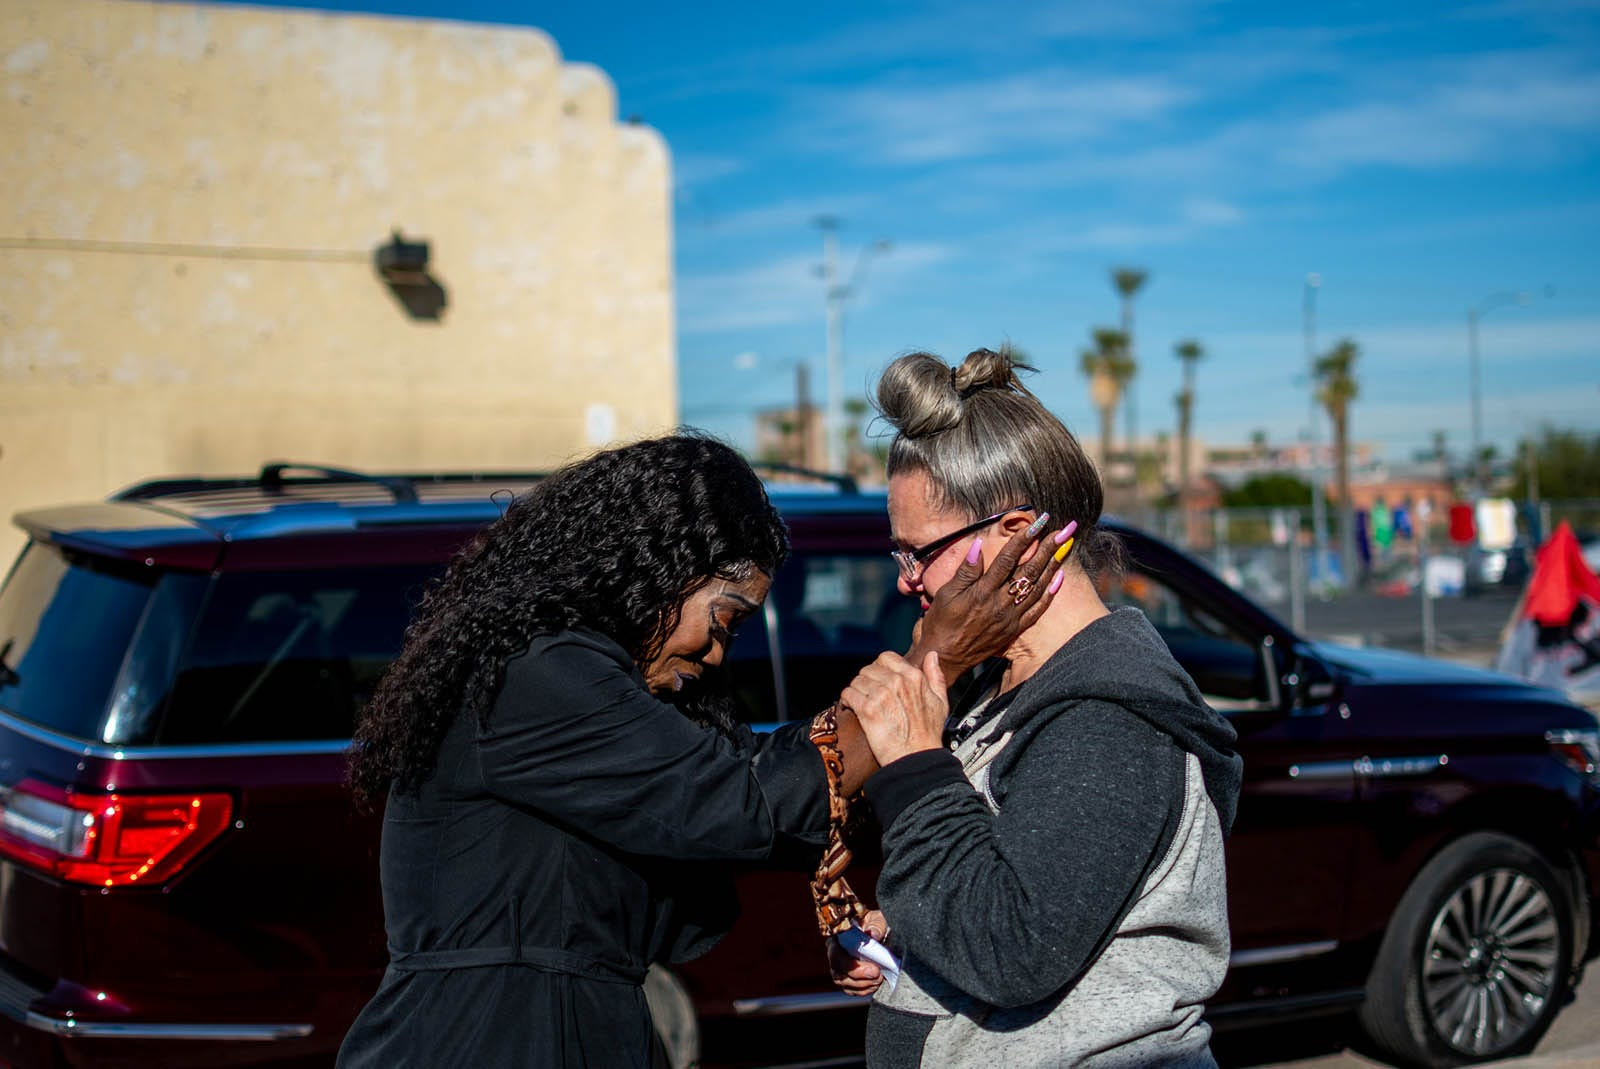 Darlene Carchedi gets emotional as she talks to a woman who promised Darlene a housing opportunity on  Jan. 3, 2020.